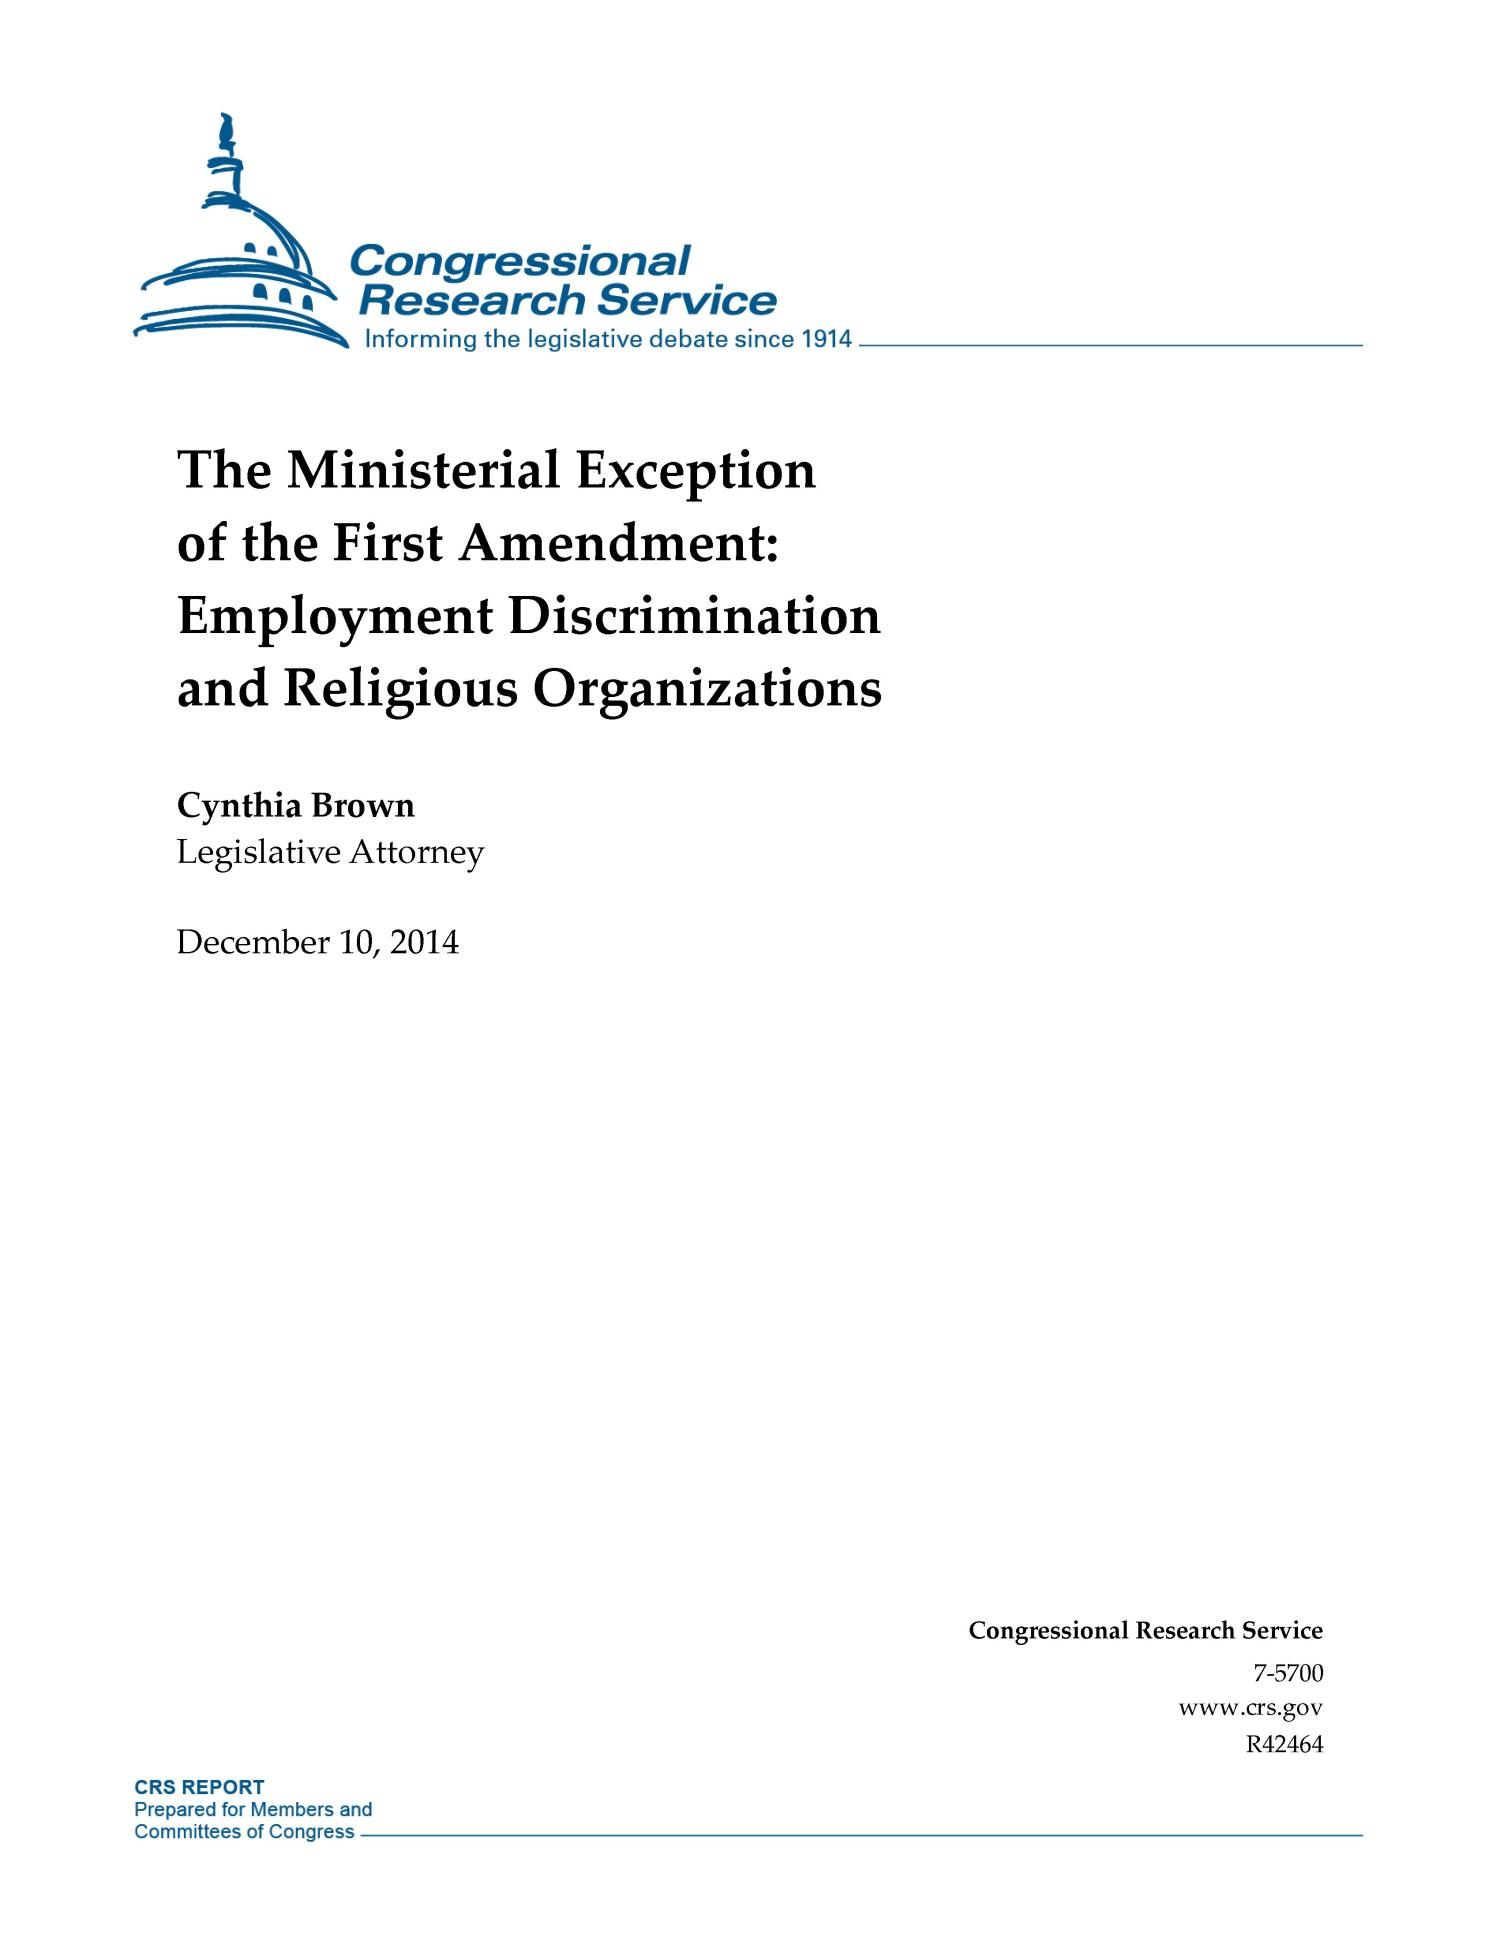 The Ministerial Exception of the First Amendment: Employment Discrimination and Religious Organizations                                                                                                      [Sequence #]: 1 of 18